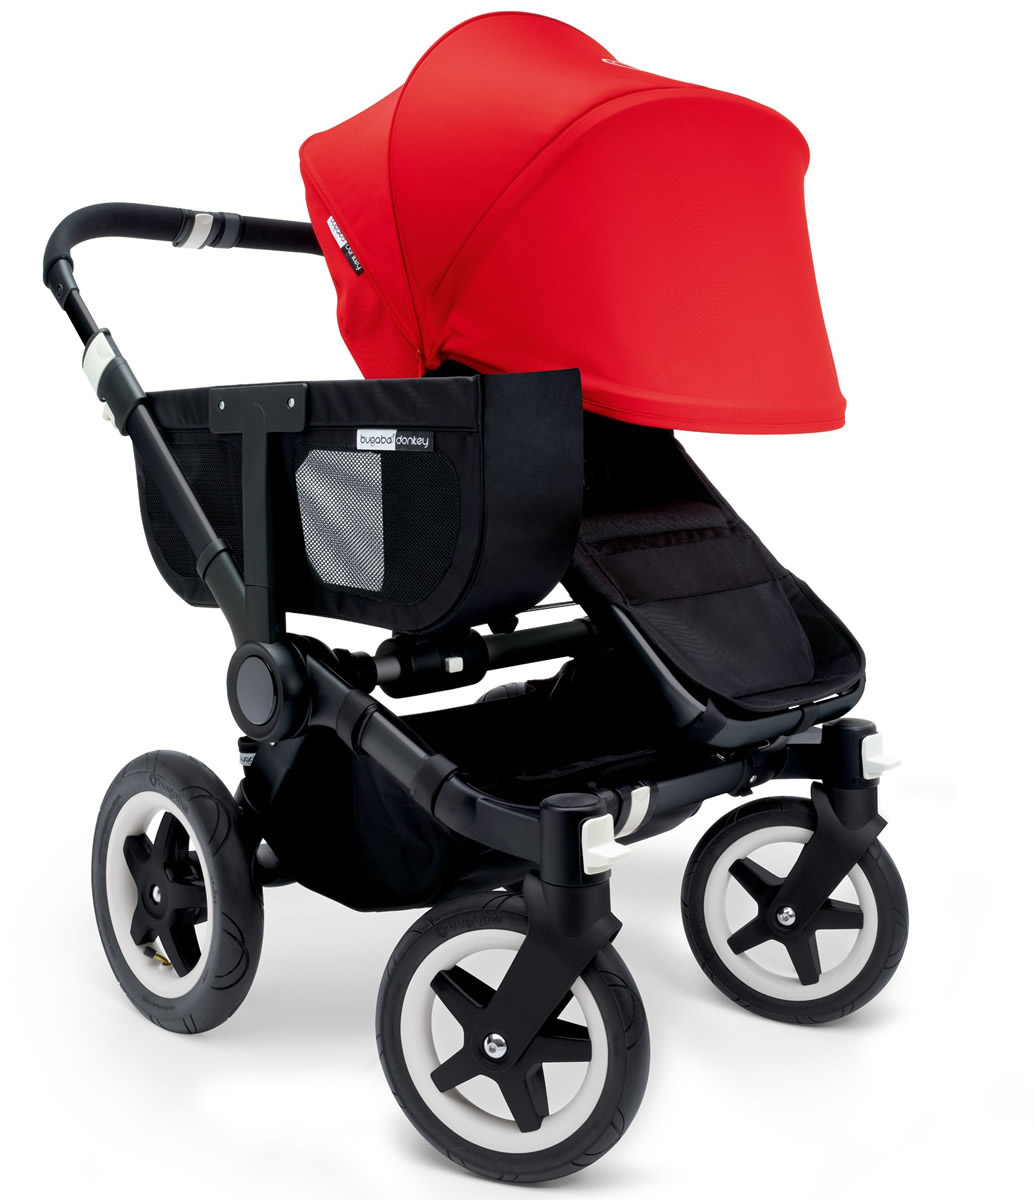 Bugaboo Donkey Mono Stroller, Extendable Canopy - 2015 - All Black/Red